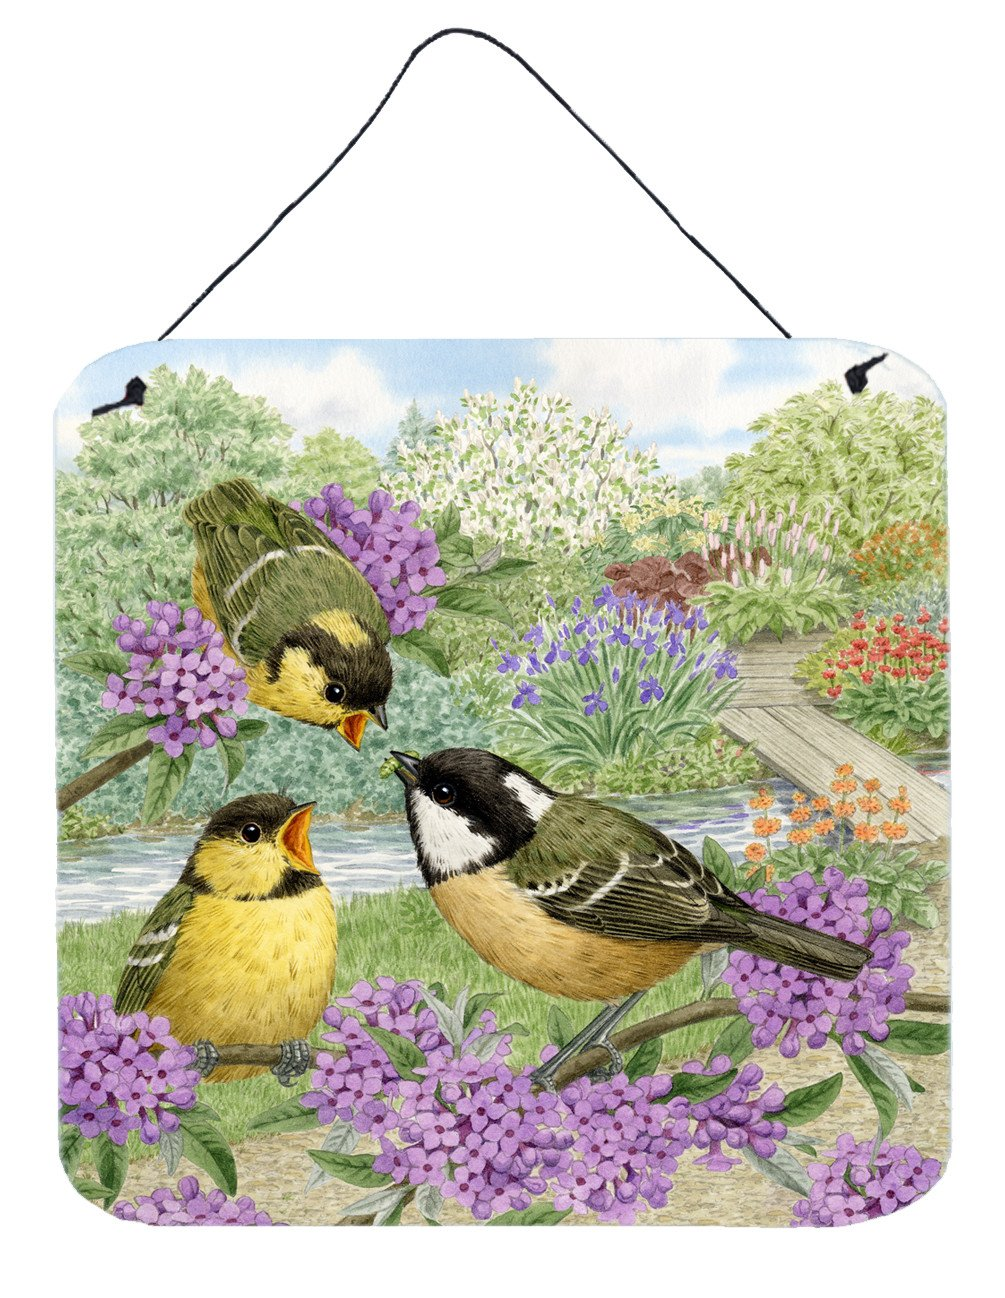 Coal Tits Feeding Time Wall or Door Hanging Prints ASAD0686DS66 - the-store.com